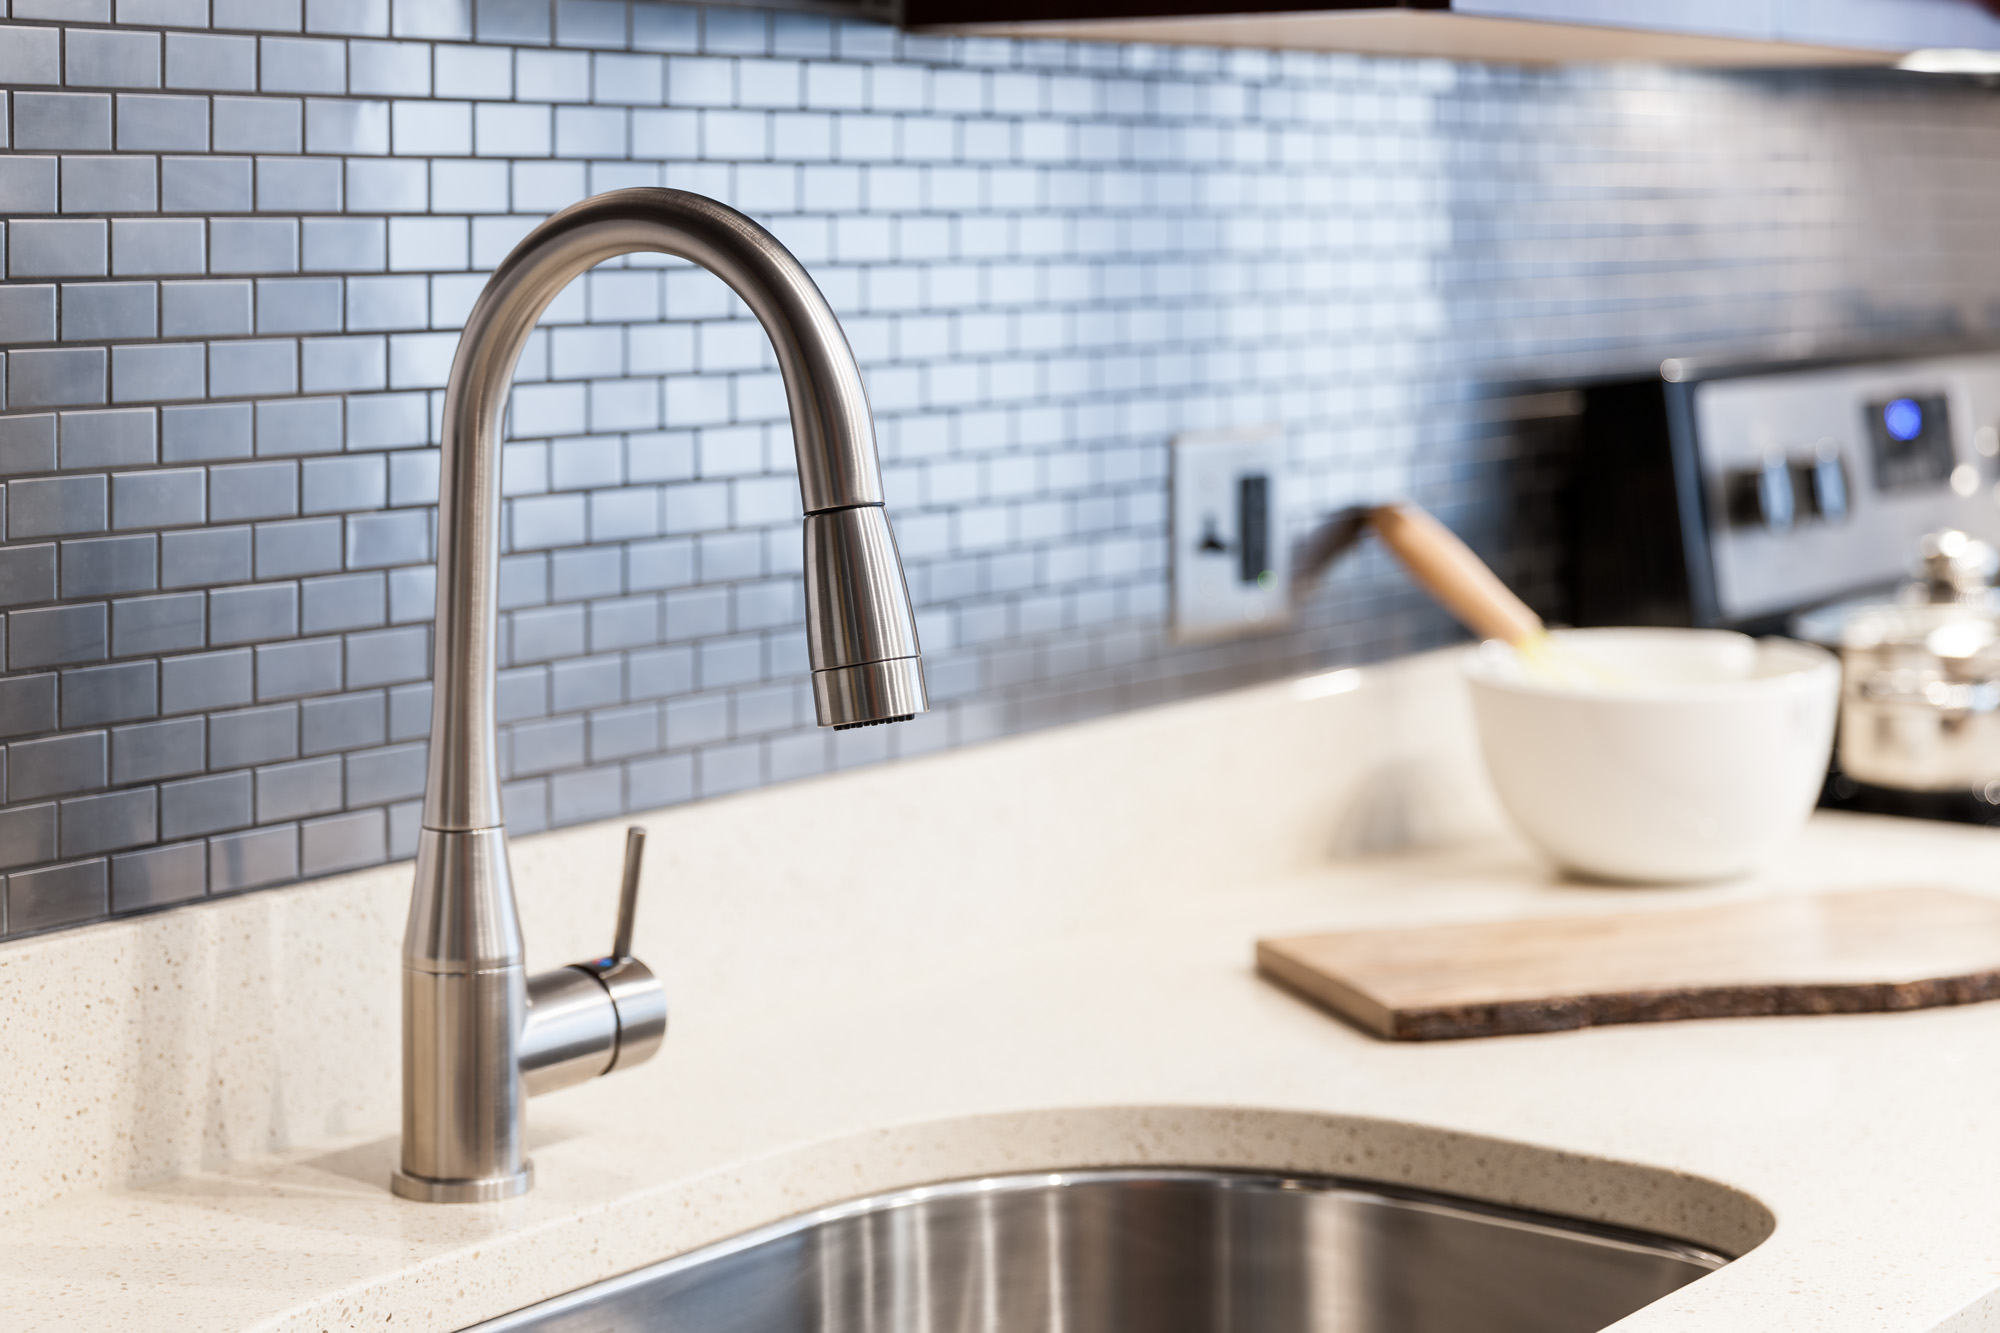 5 Products You Never Thought Could Clean Your Apartment ...